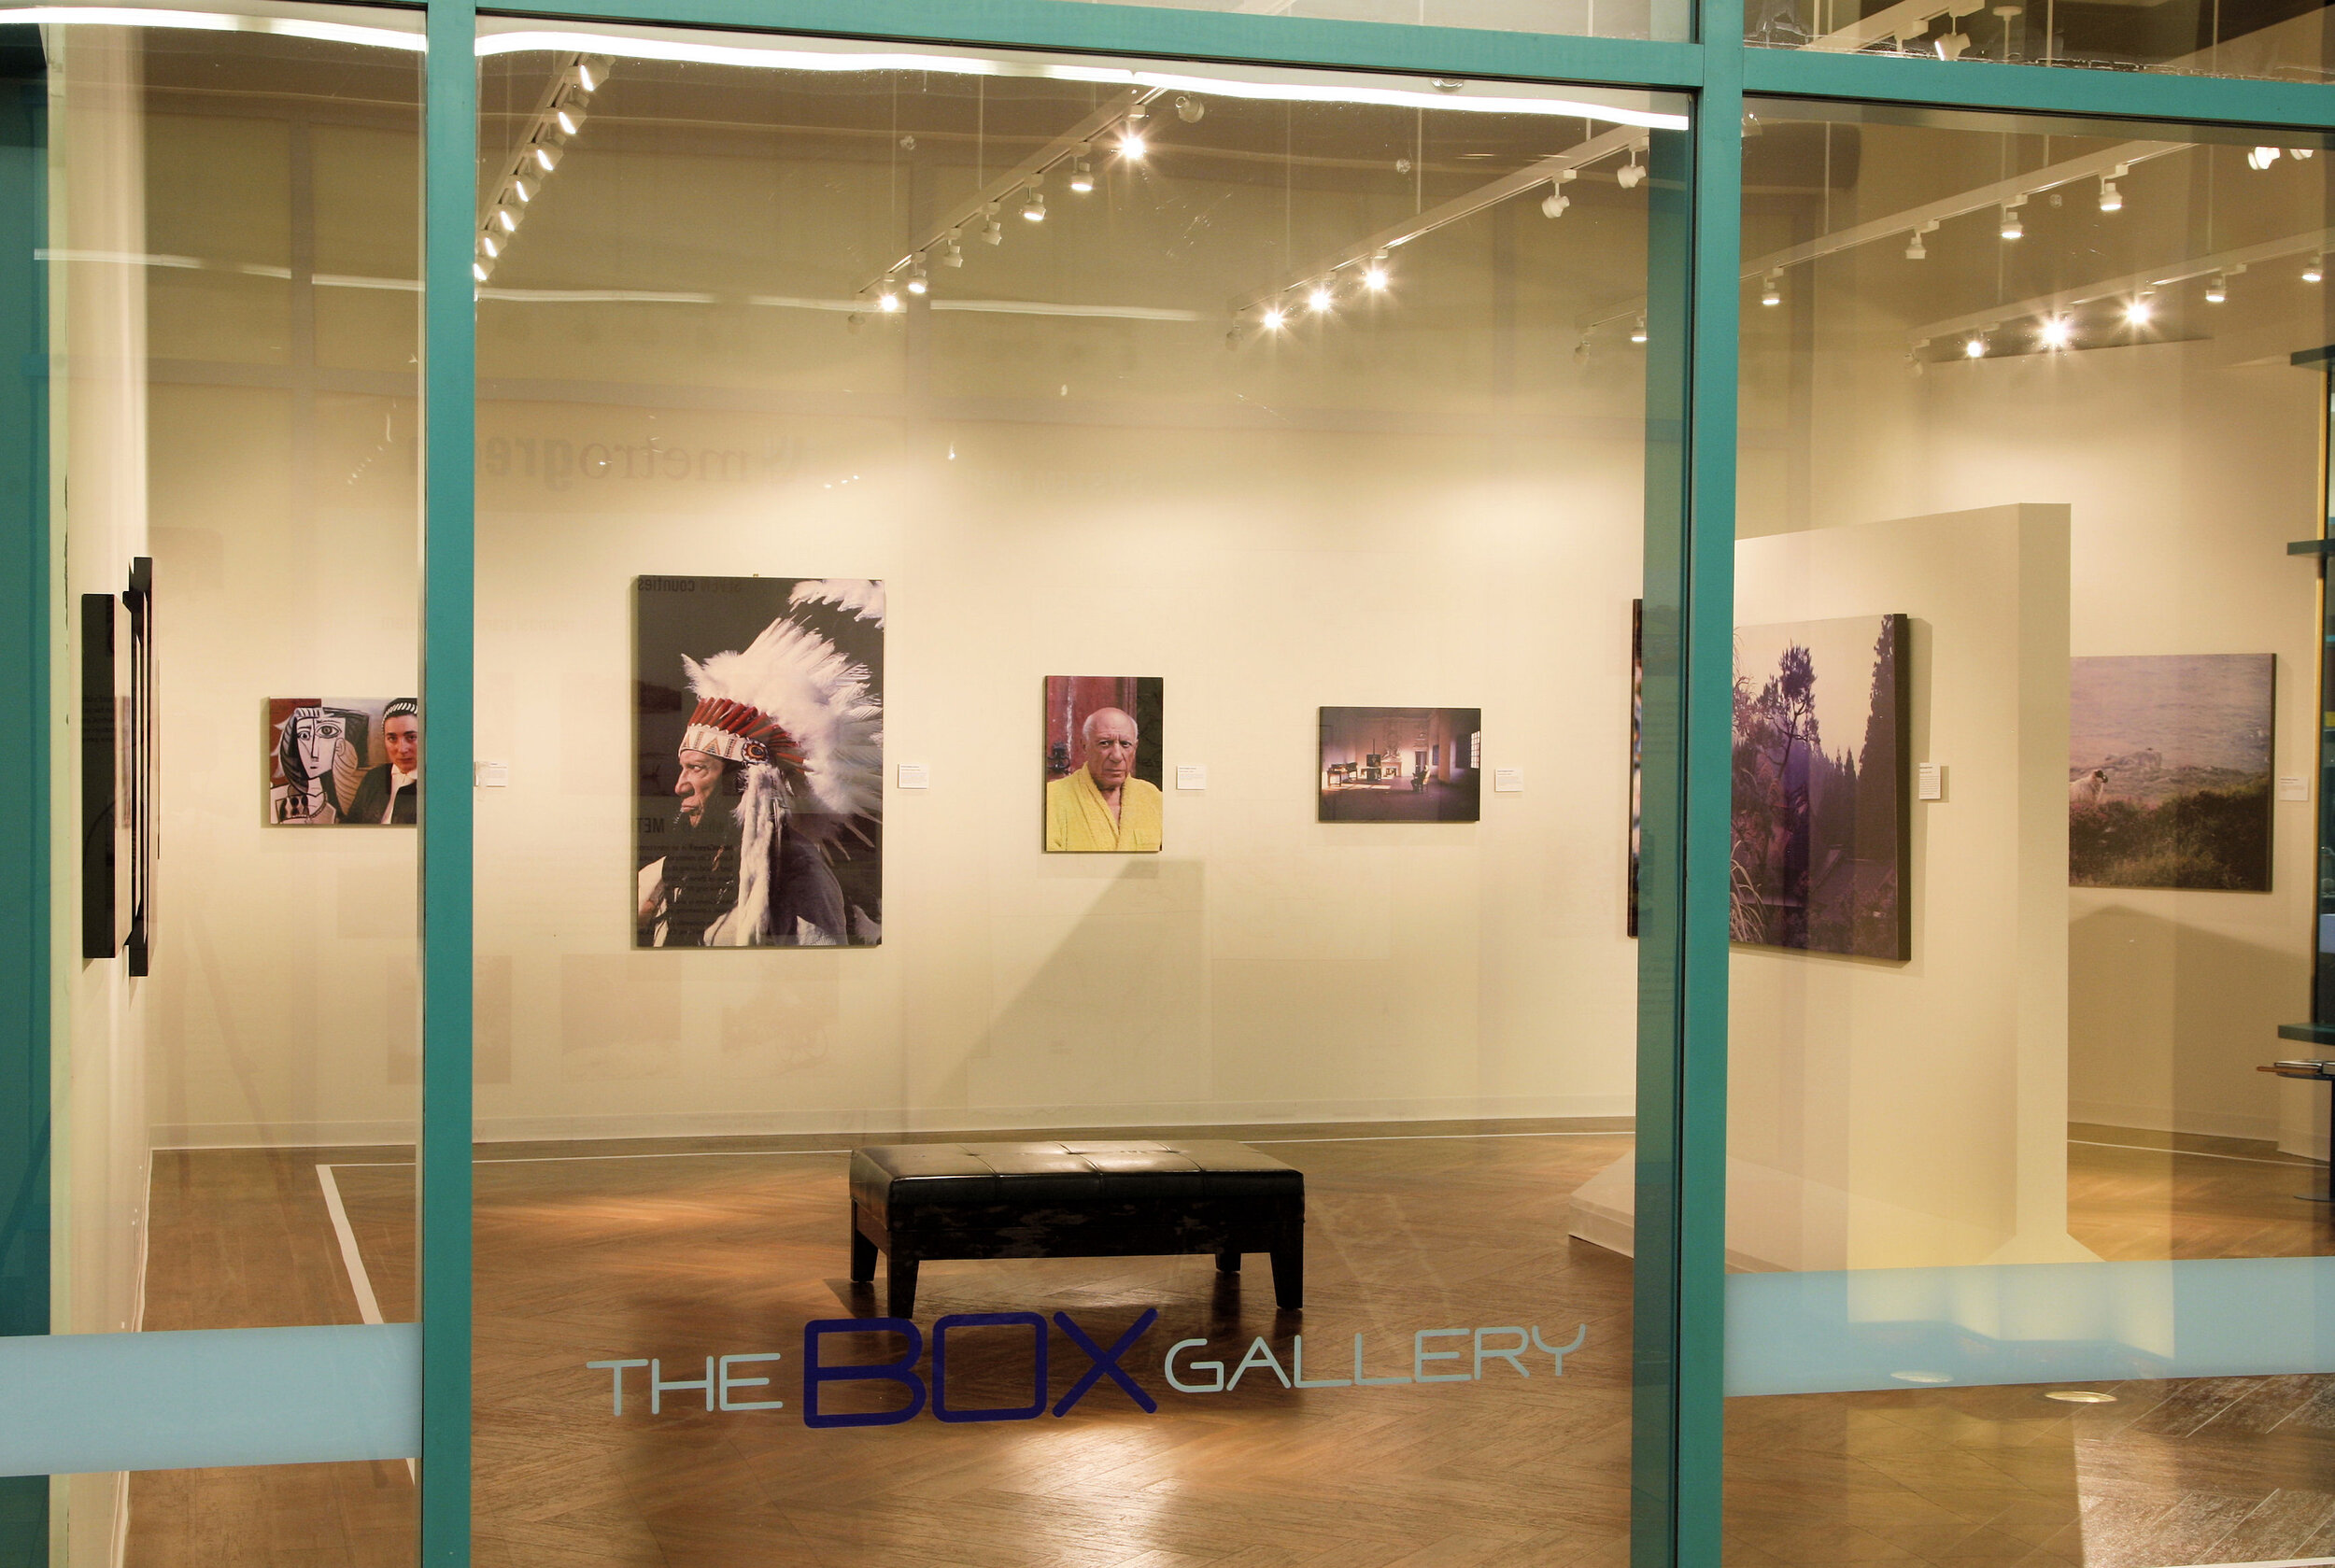 DDD.galleryinstallation.2011.jpg